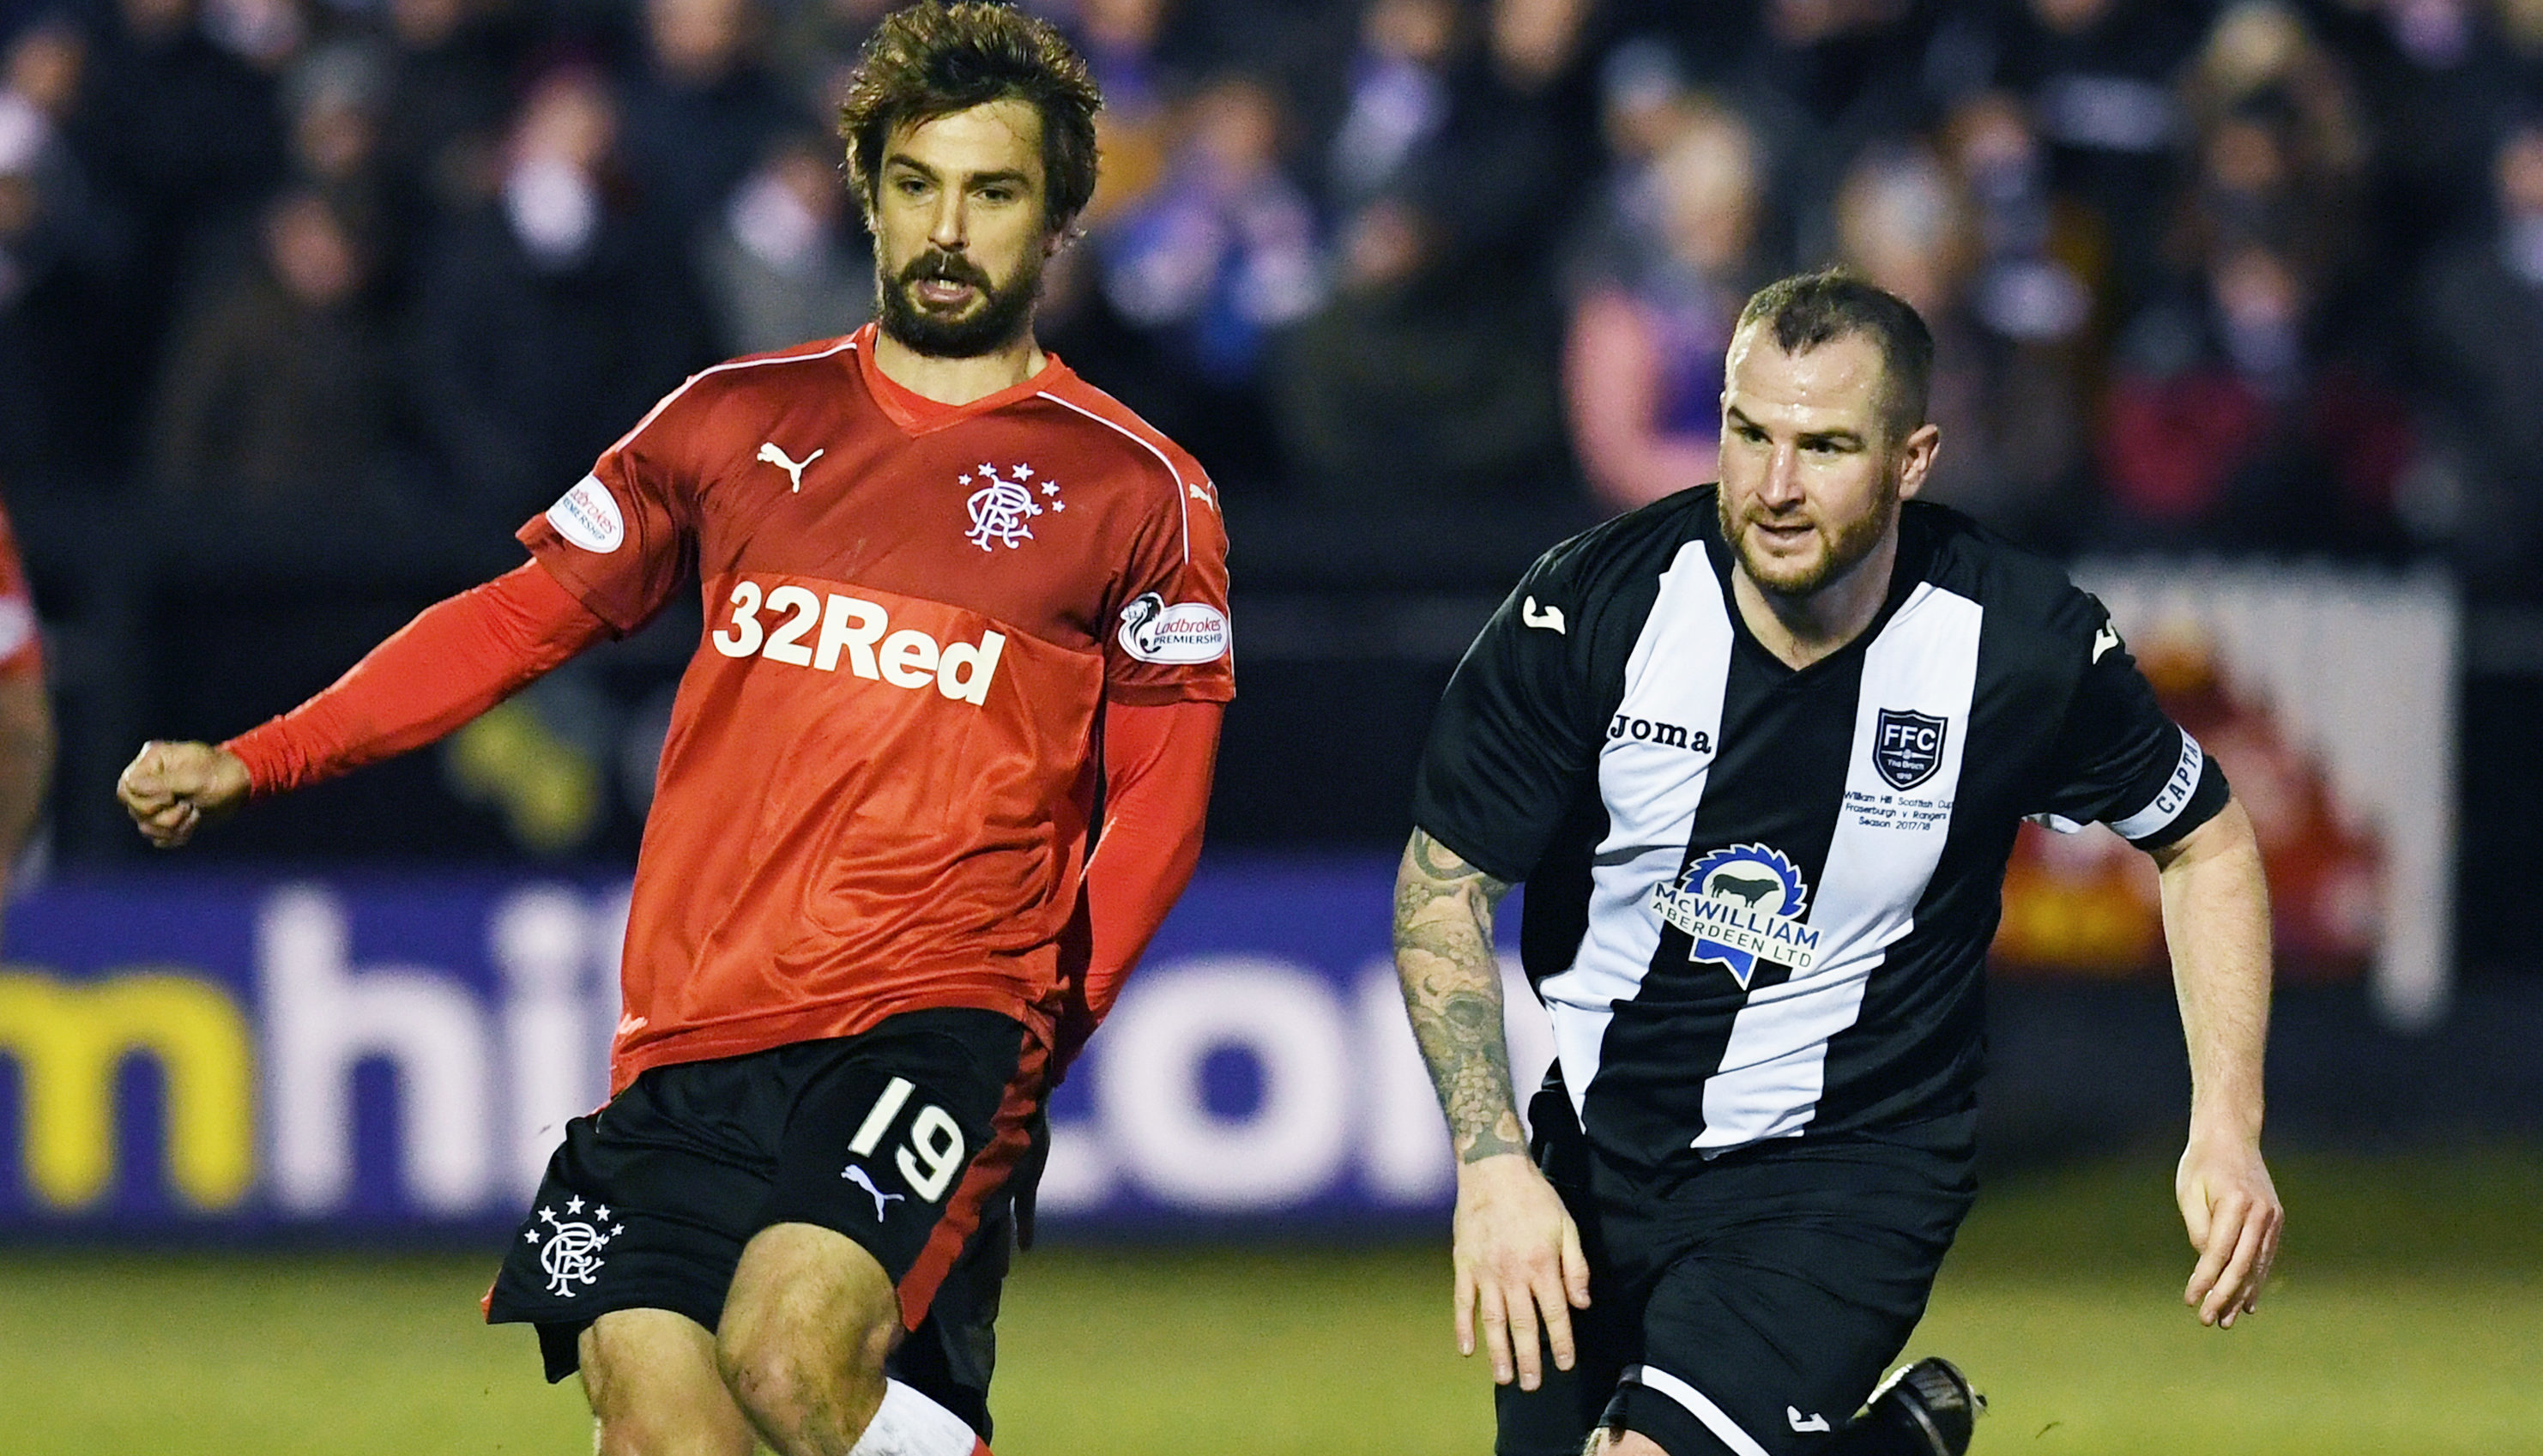 Highland League side Fraserburgh faced Rangers in the Scottish Cup in 2018